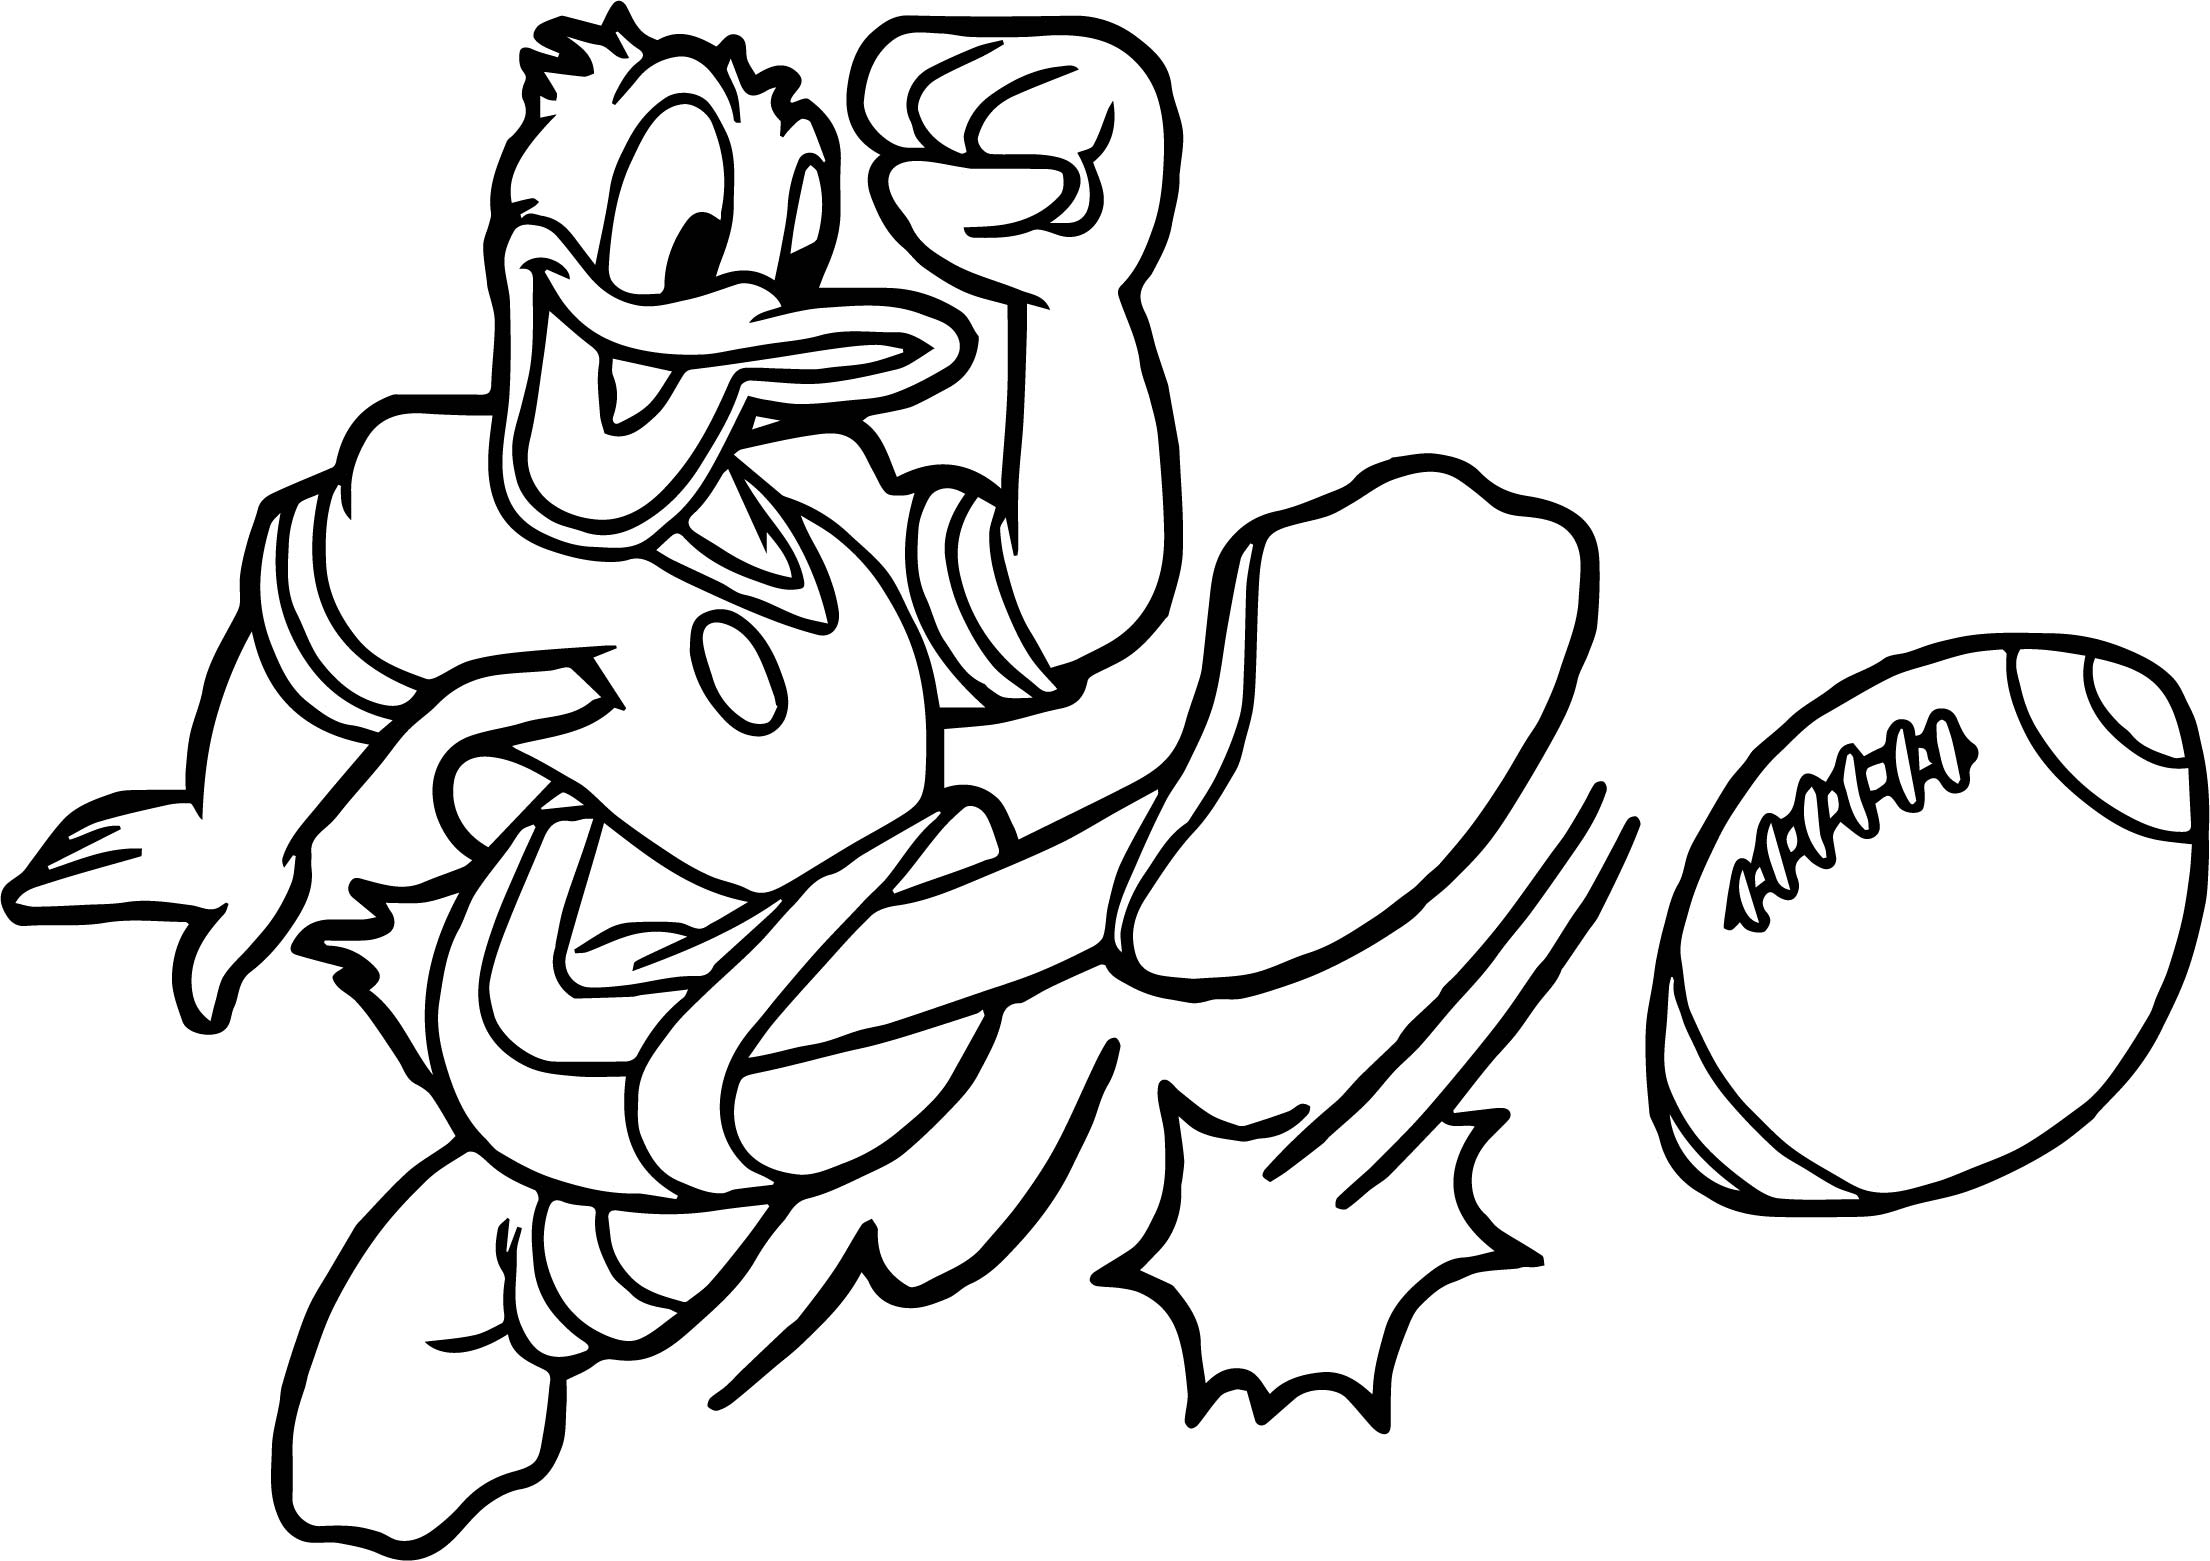 2210x1561 Exciting Afl Coloring Pages Introducing Cool Football Clubs Logos